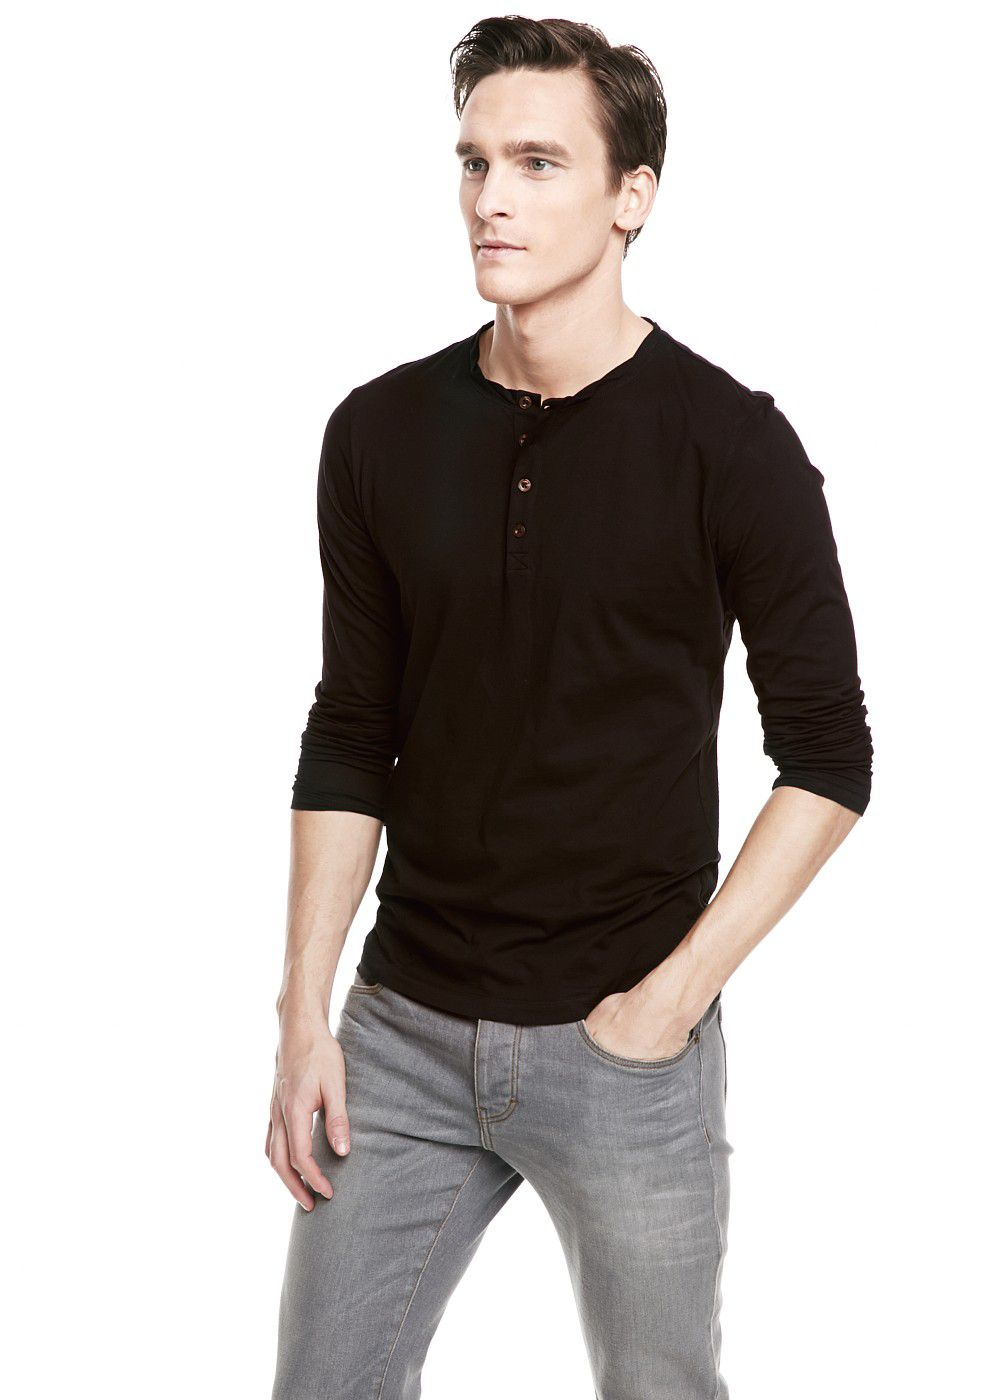 Cotton henley t-shirt